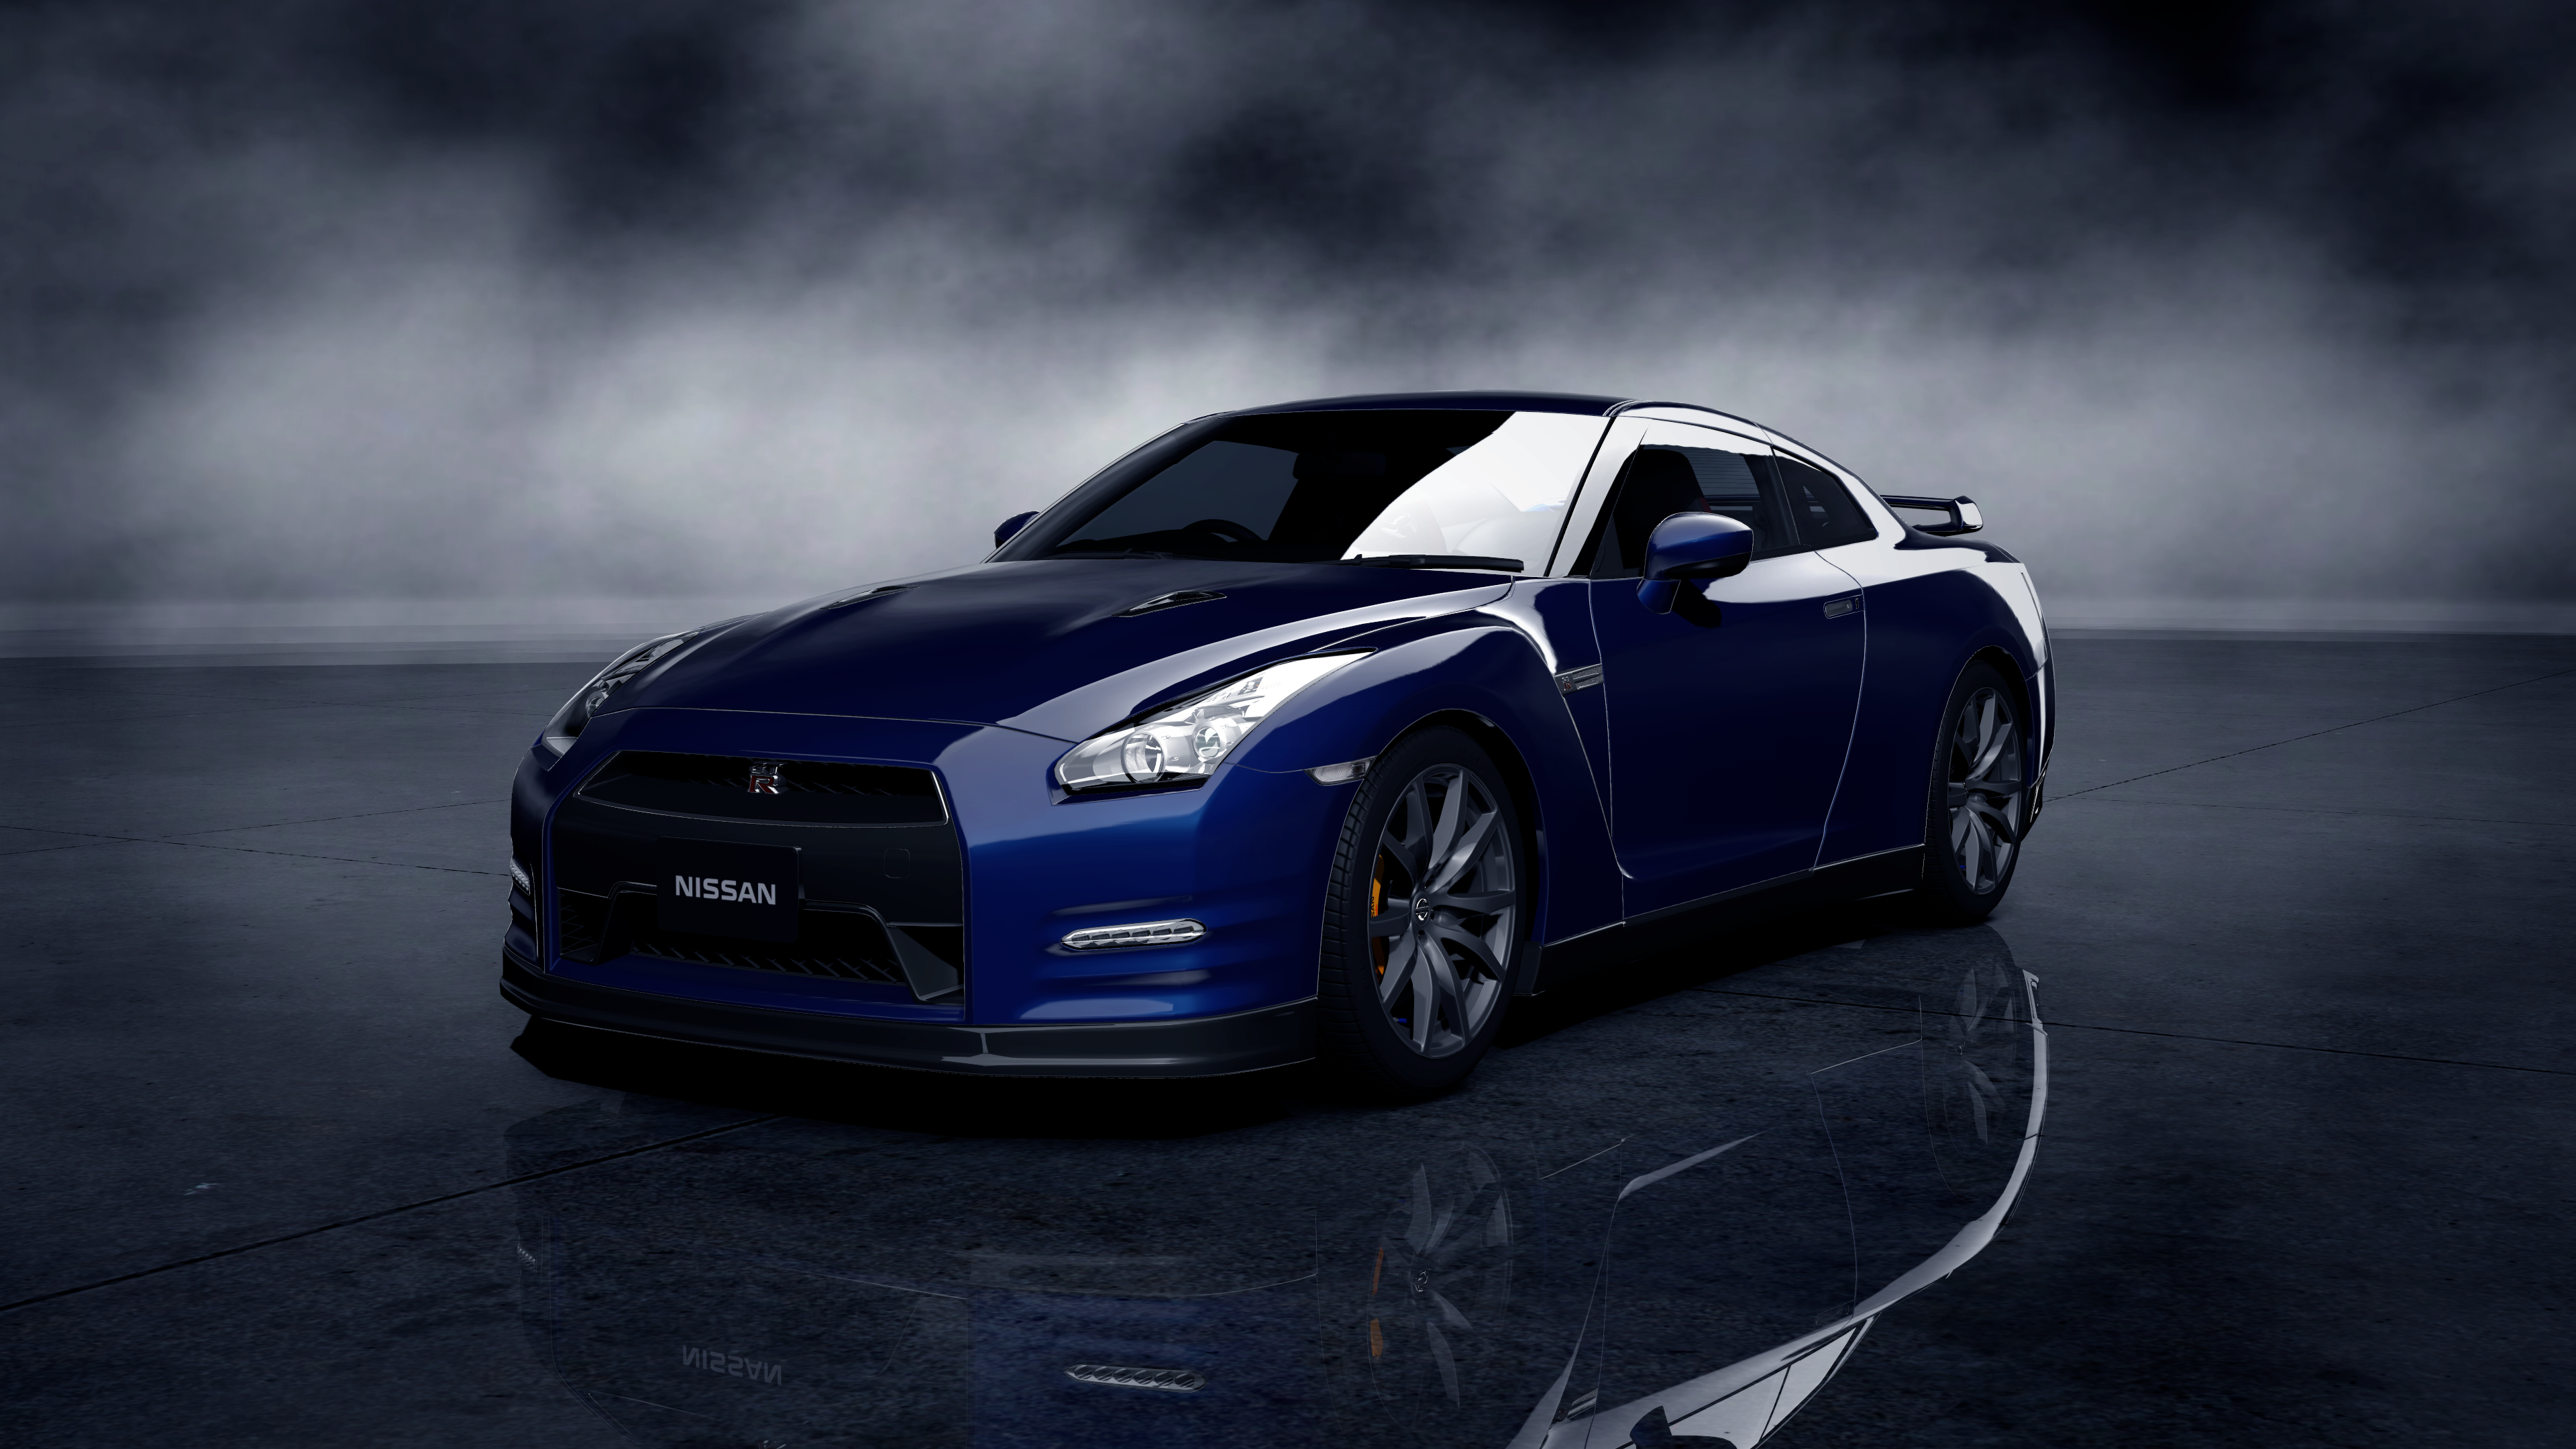 Nissan Gtr Black Edition Wallpaper